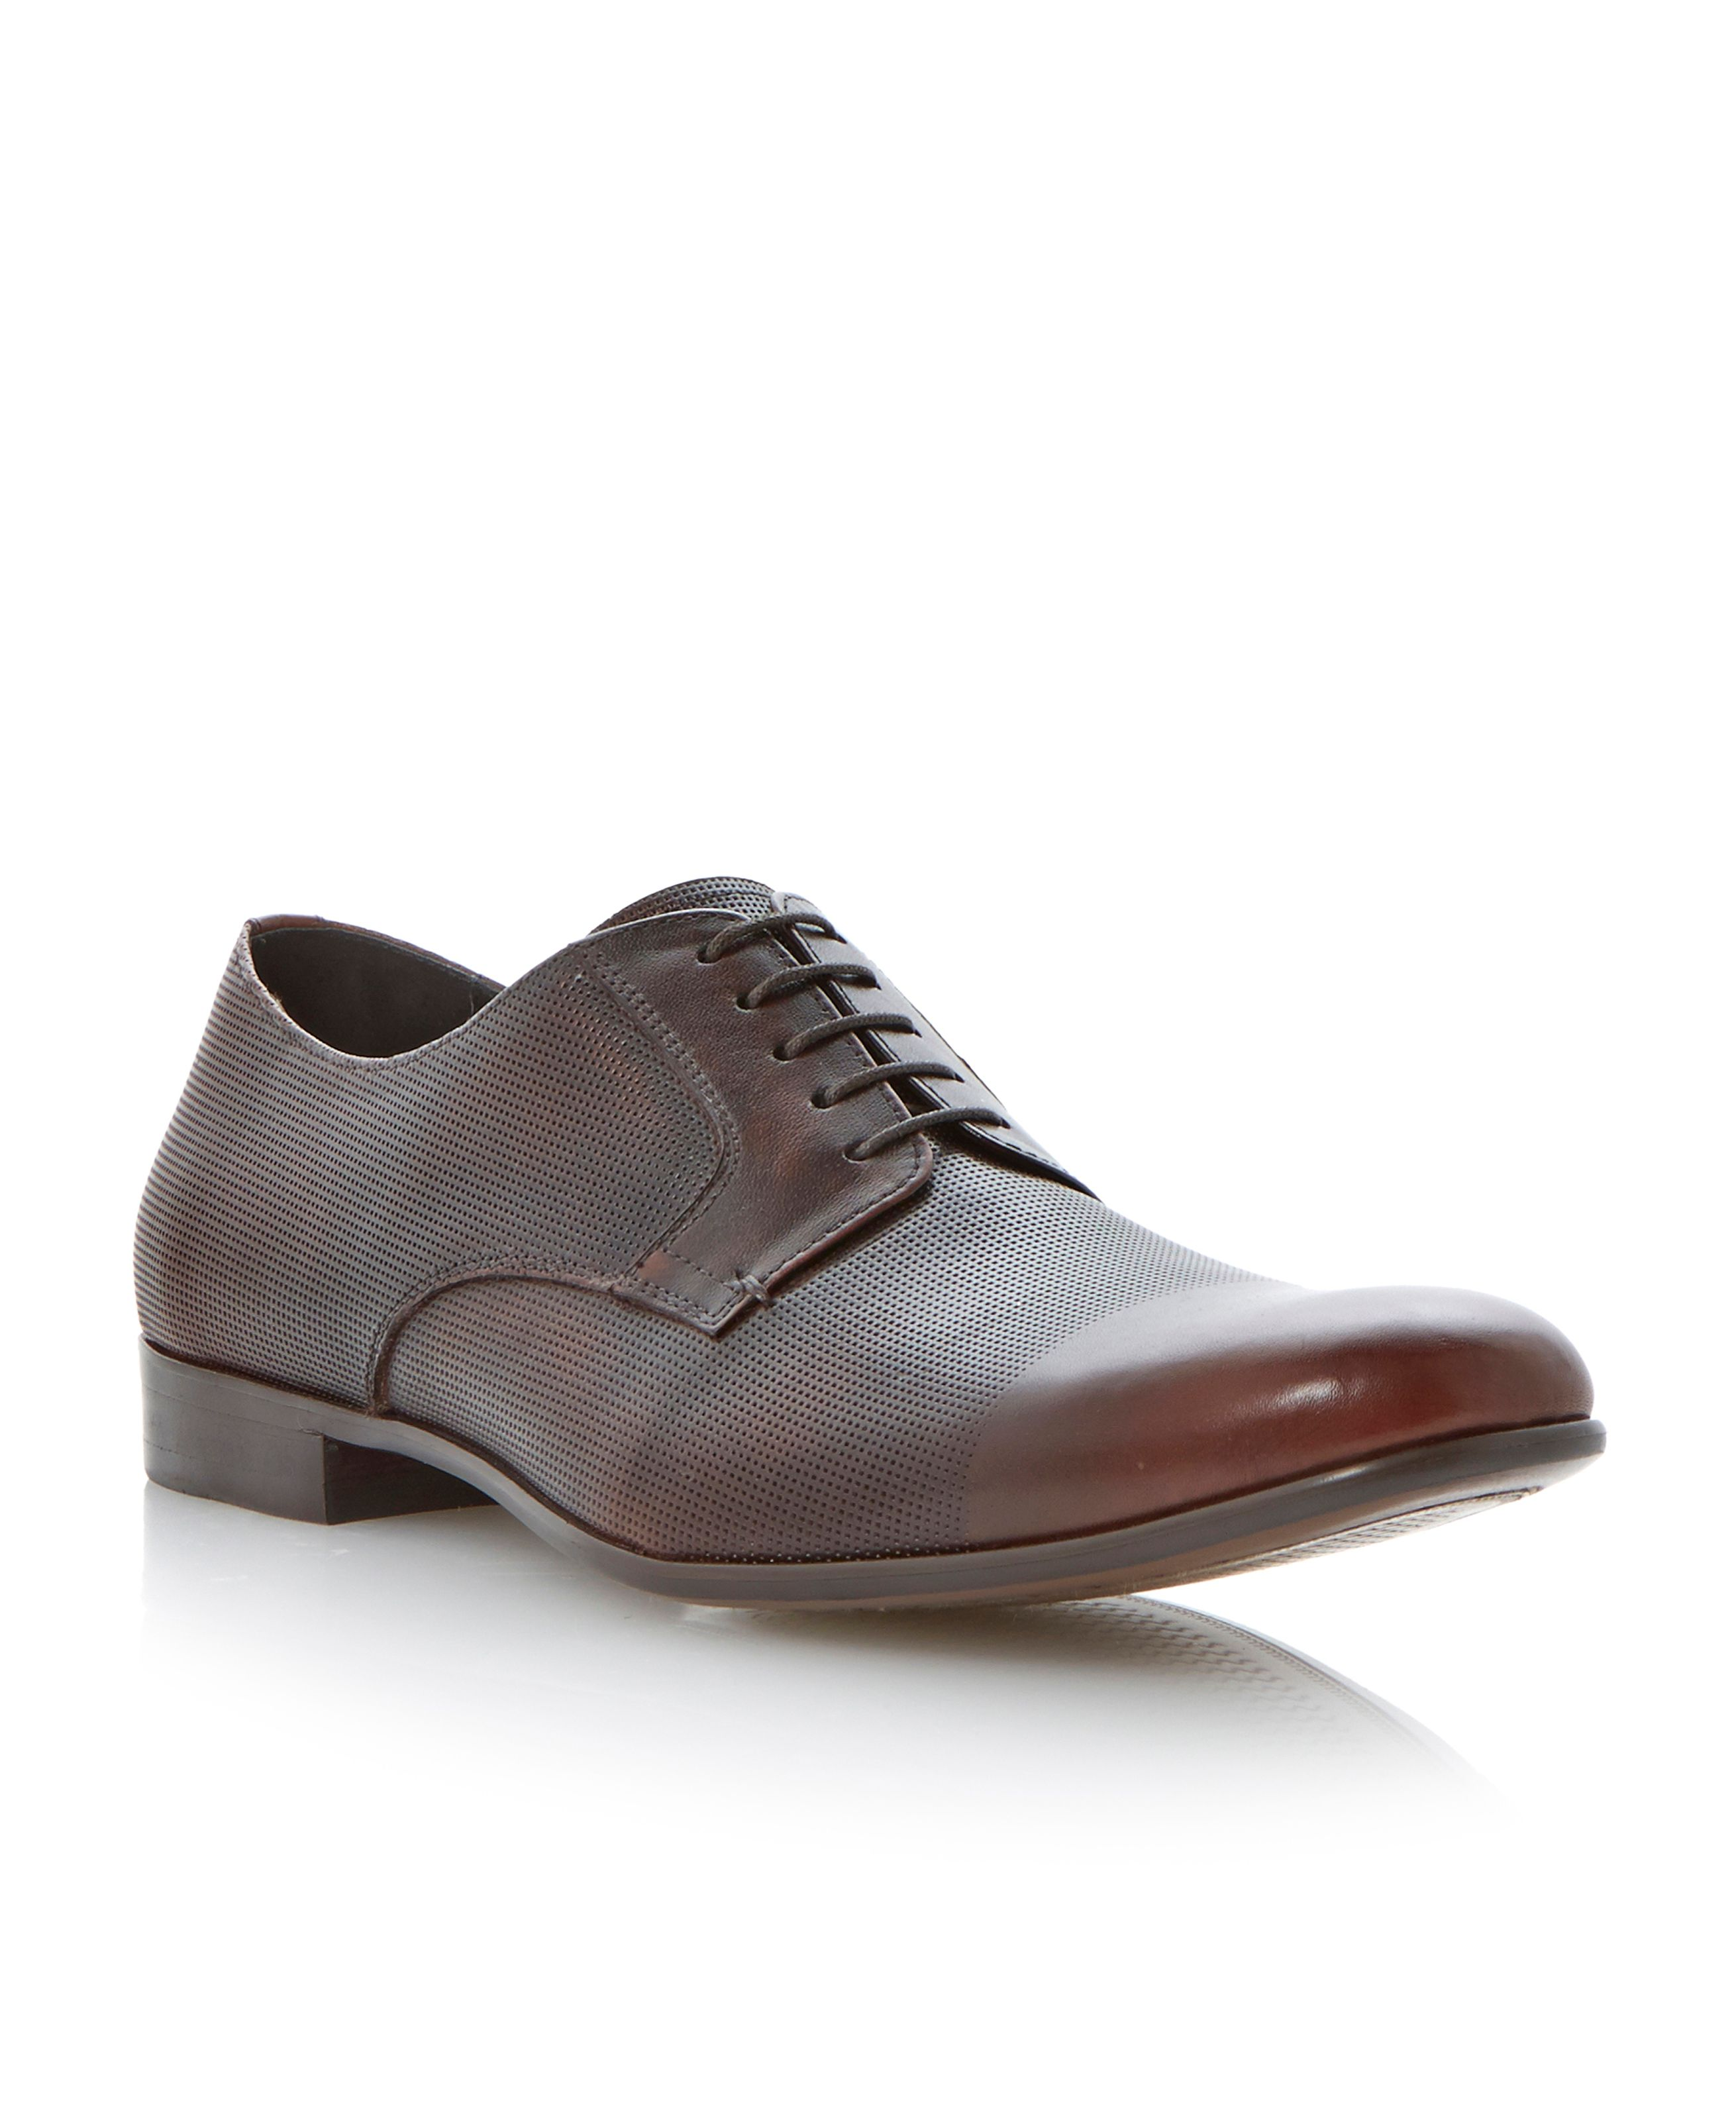 Aporation lace up round toe brogues